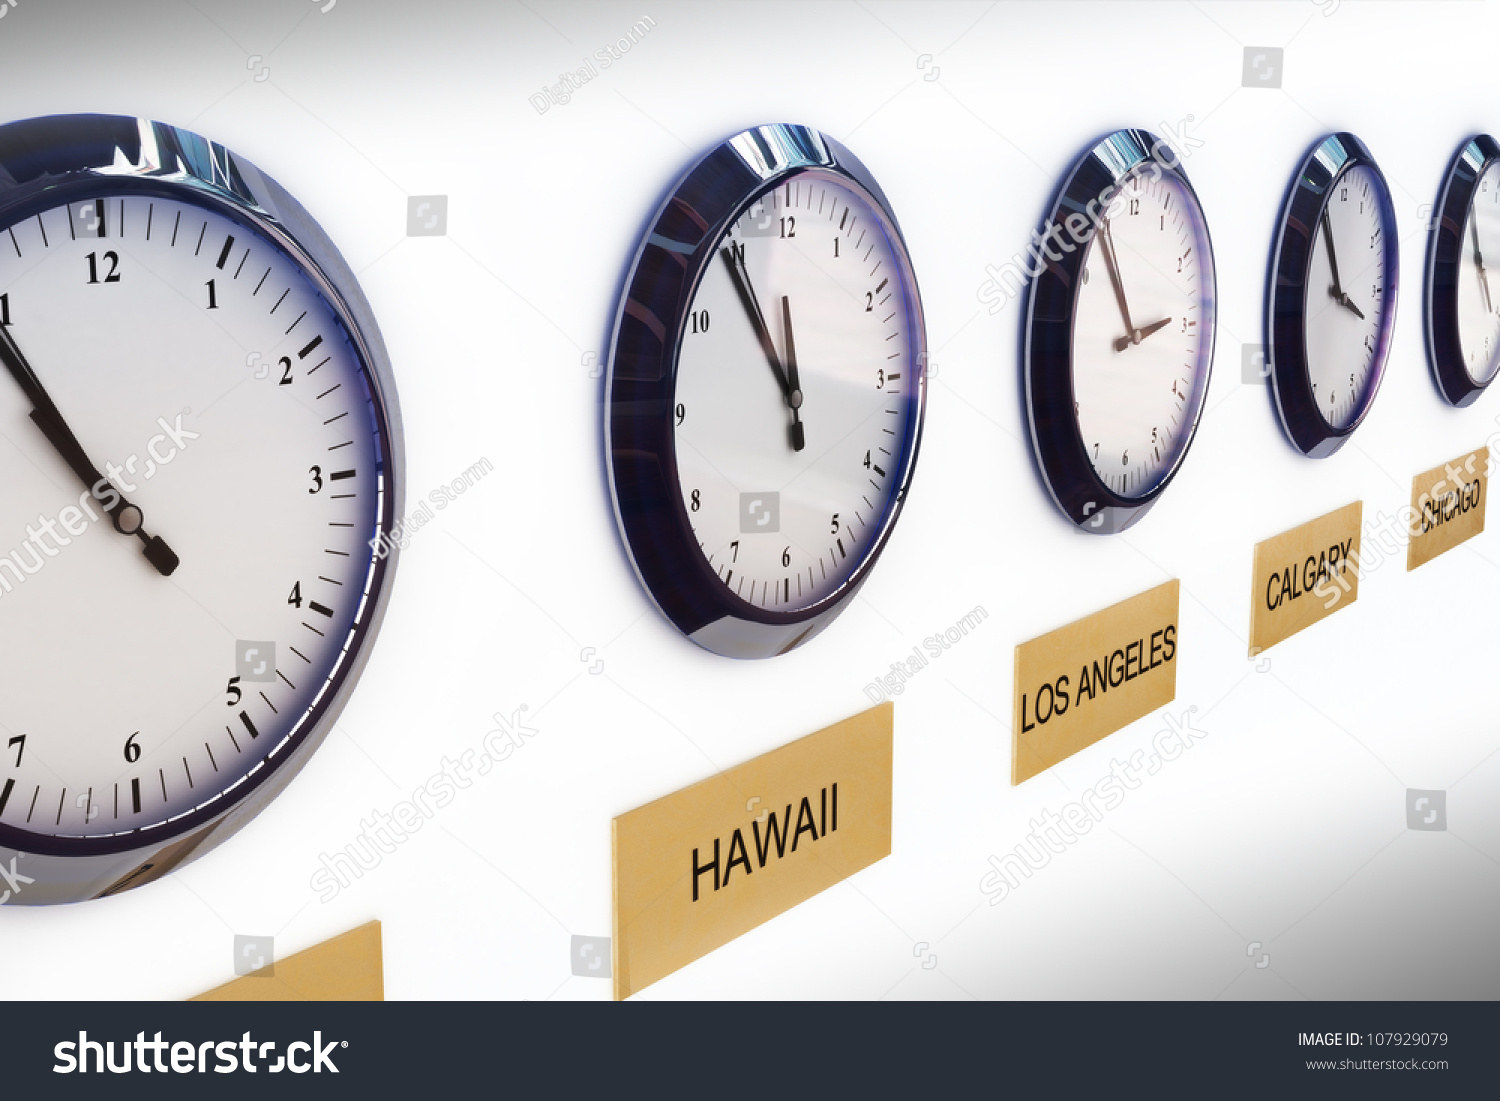 Timezone Clocks Showing Different Times Of World Locations Stock Photo 107929079 : Shutterstock